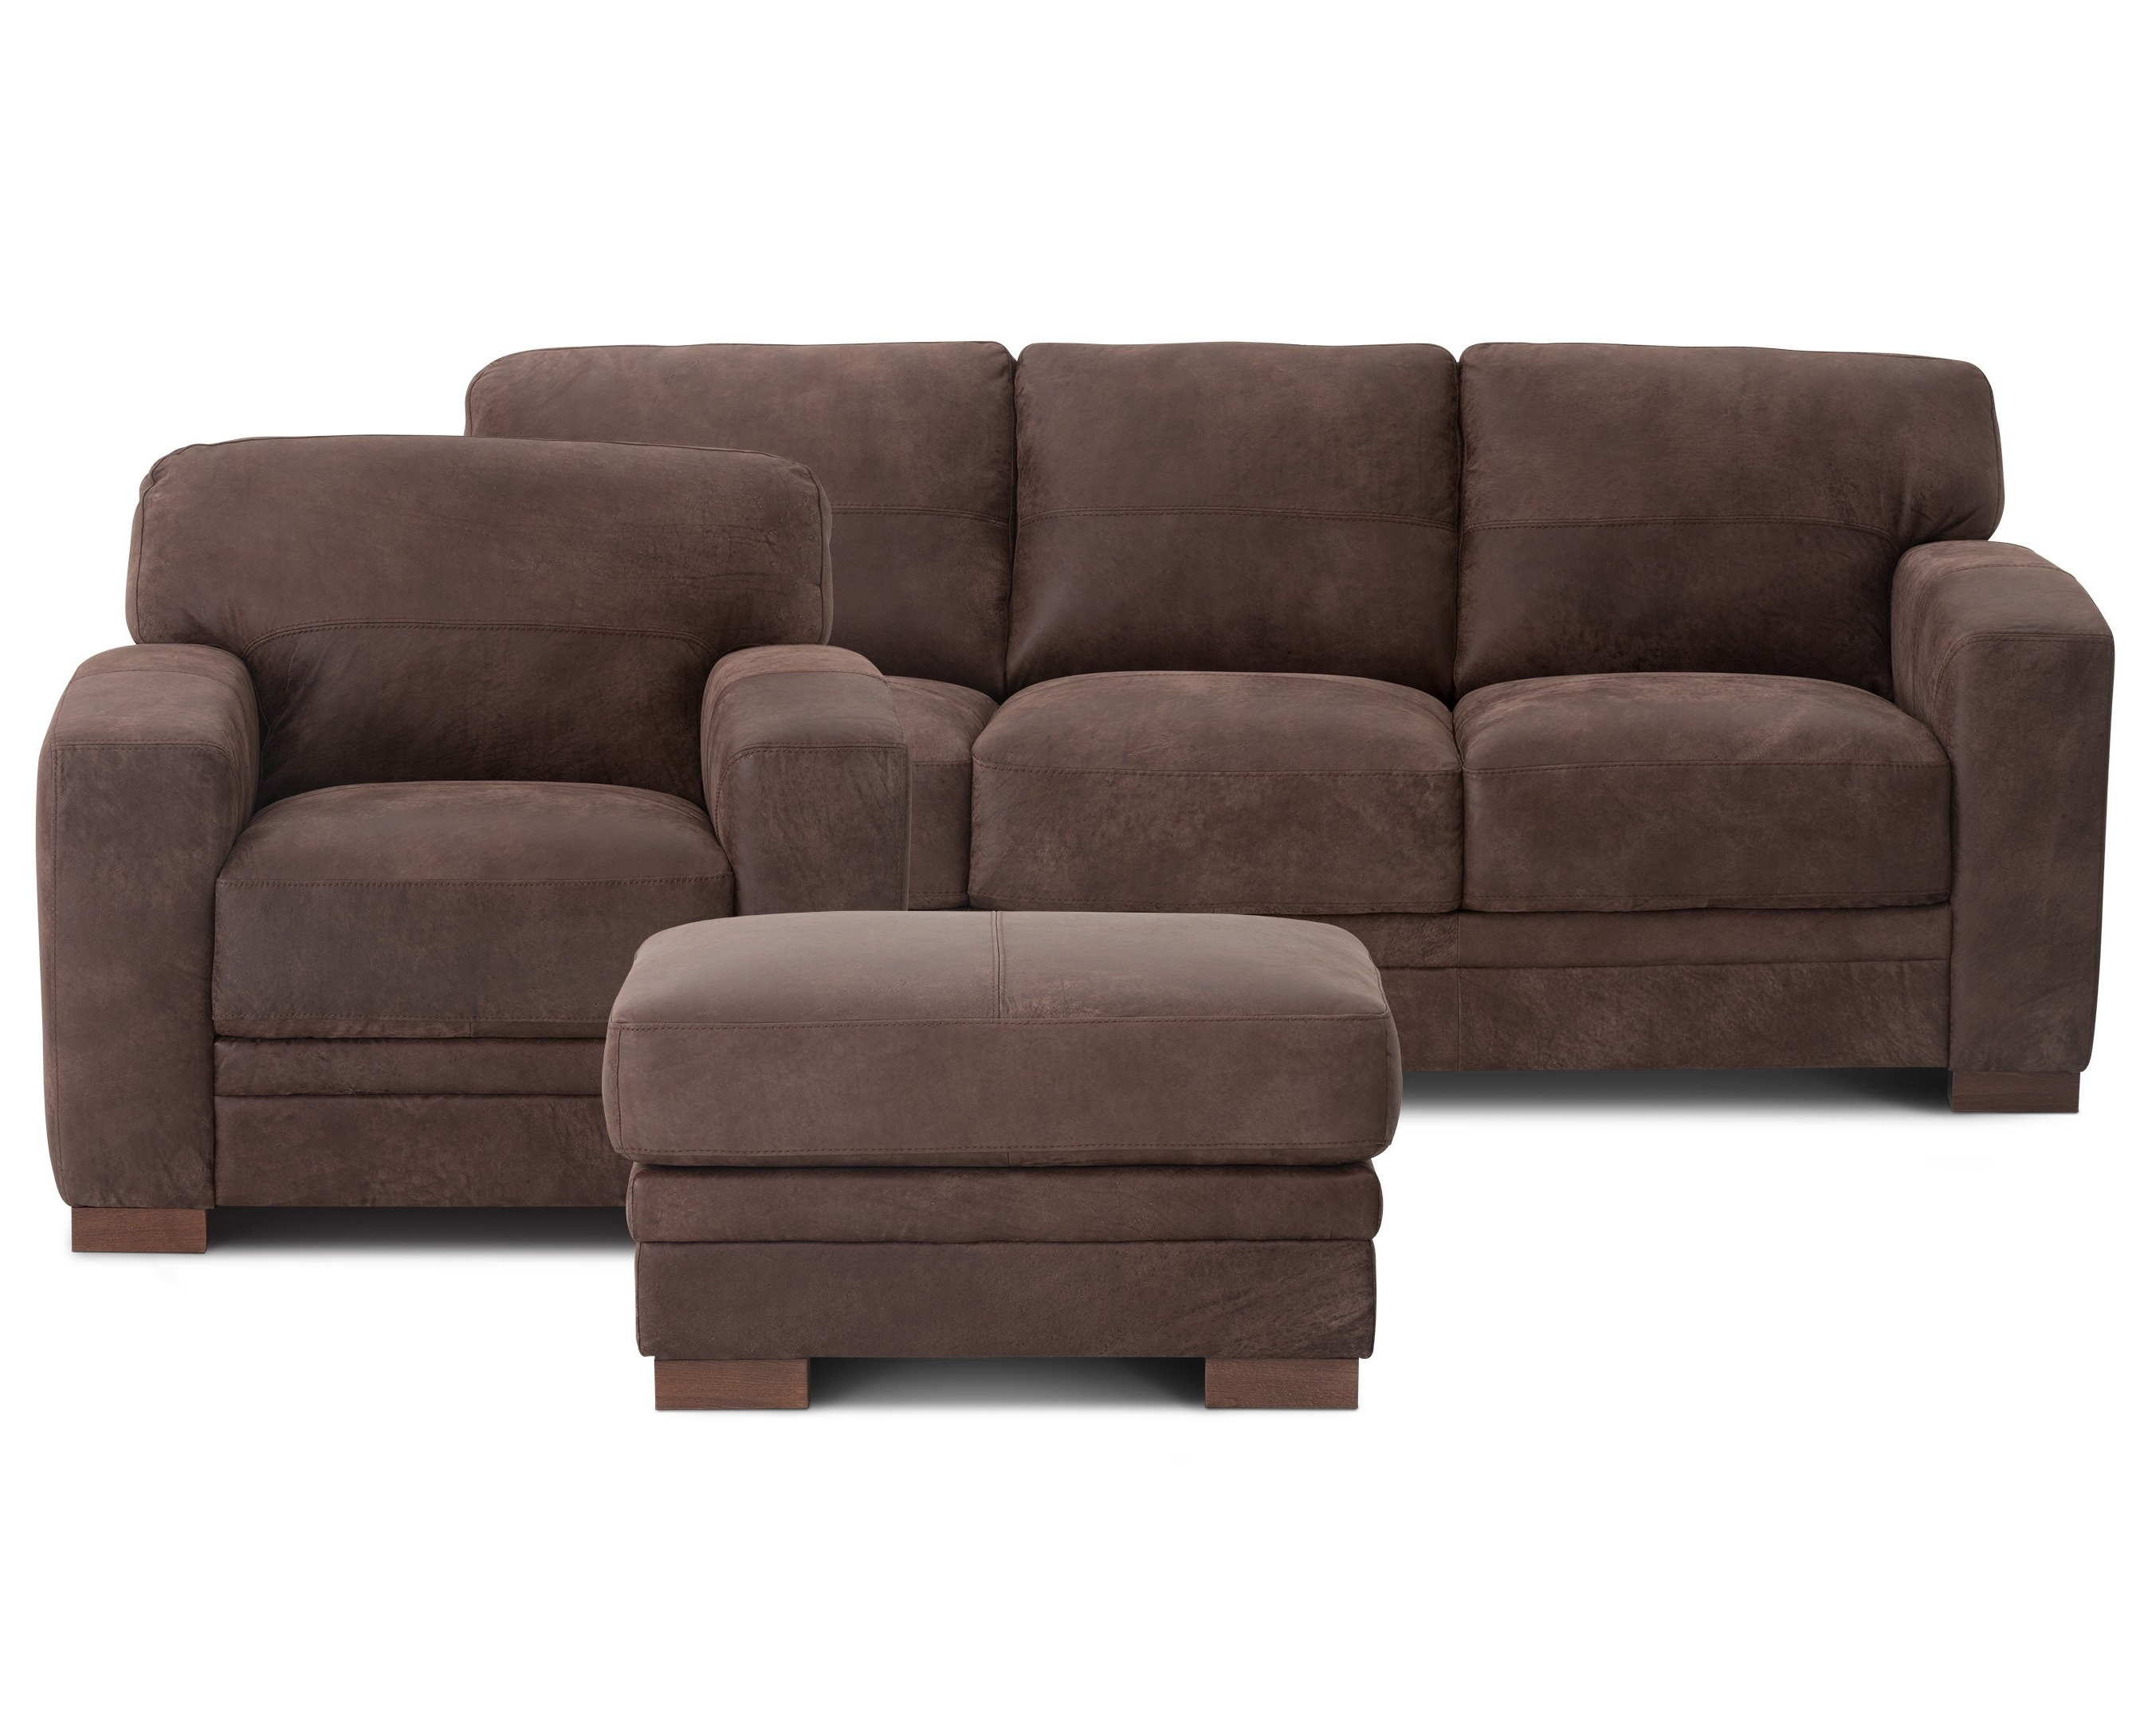 Furniture Row Sectional Sofas Inside Favorite Alamosa 2 Pc (View 4 of 15)